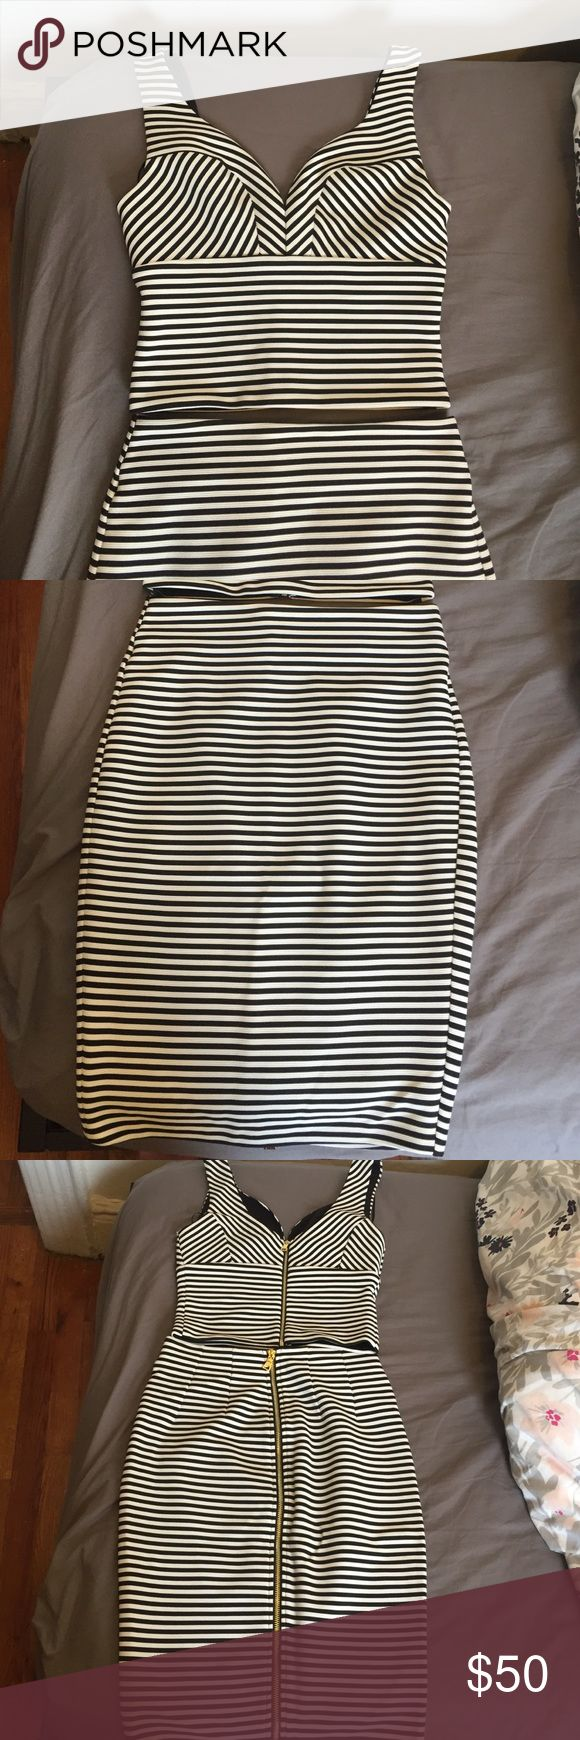 Guess two piece bodycon outfit - XS Size XS, fits true to size for Guess clothing, 96% polyester, 4% spandex, worn once then dry cleaned, bought full price at Bloomingdales, skirt hits at knee Guess Dresses Mini